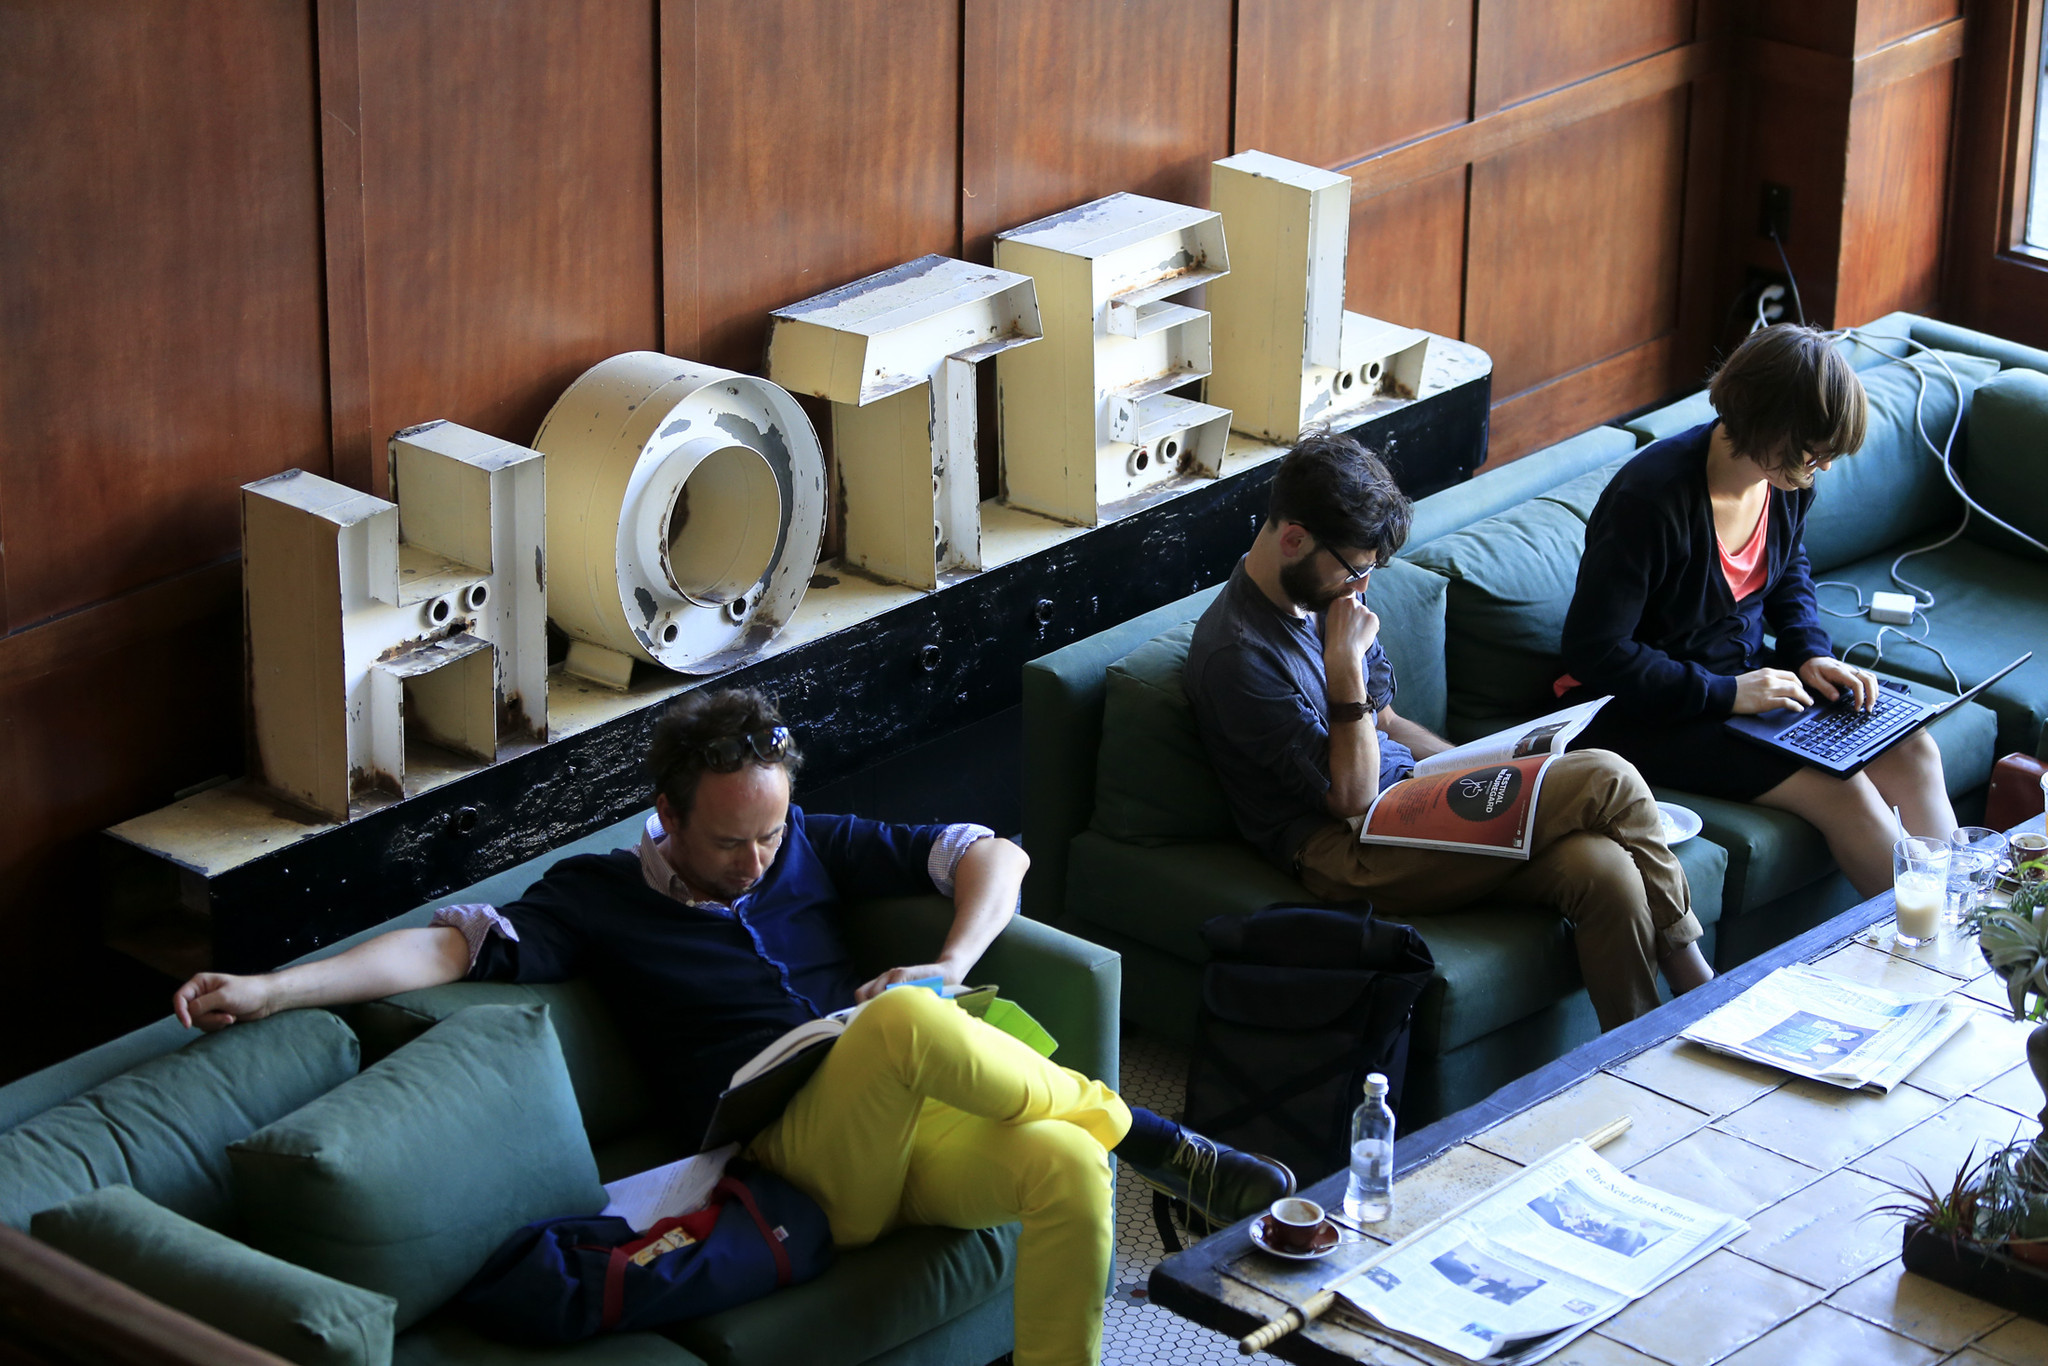 The lobby of the Ace Hotel in downtown Portland, Ore., is shown in July.